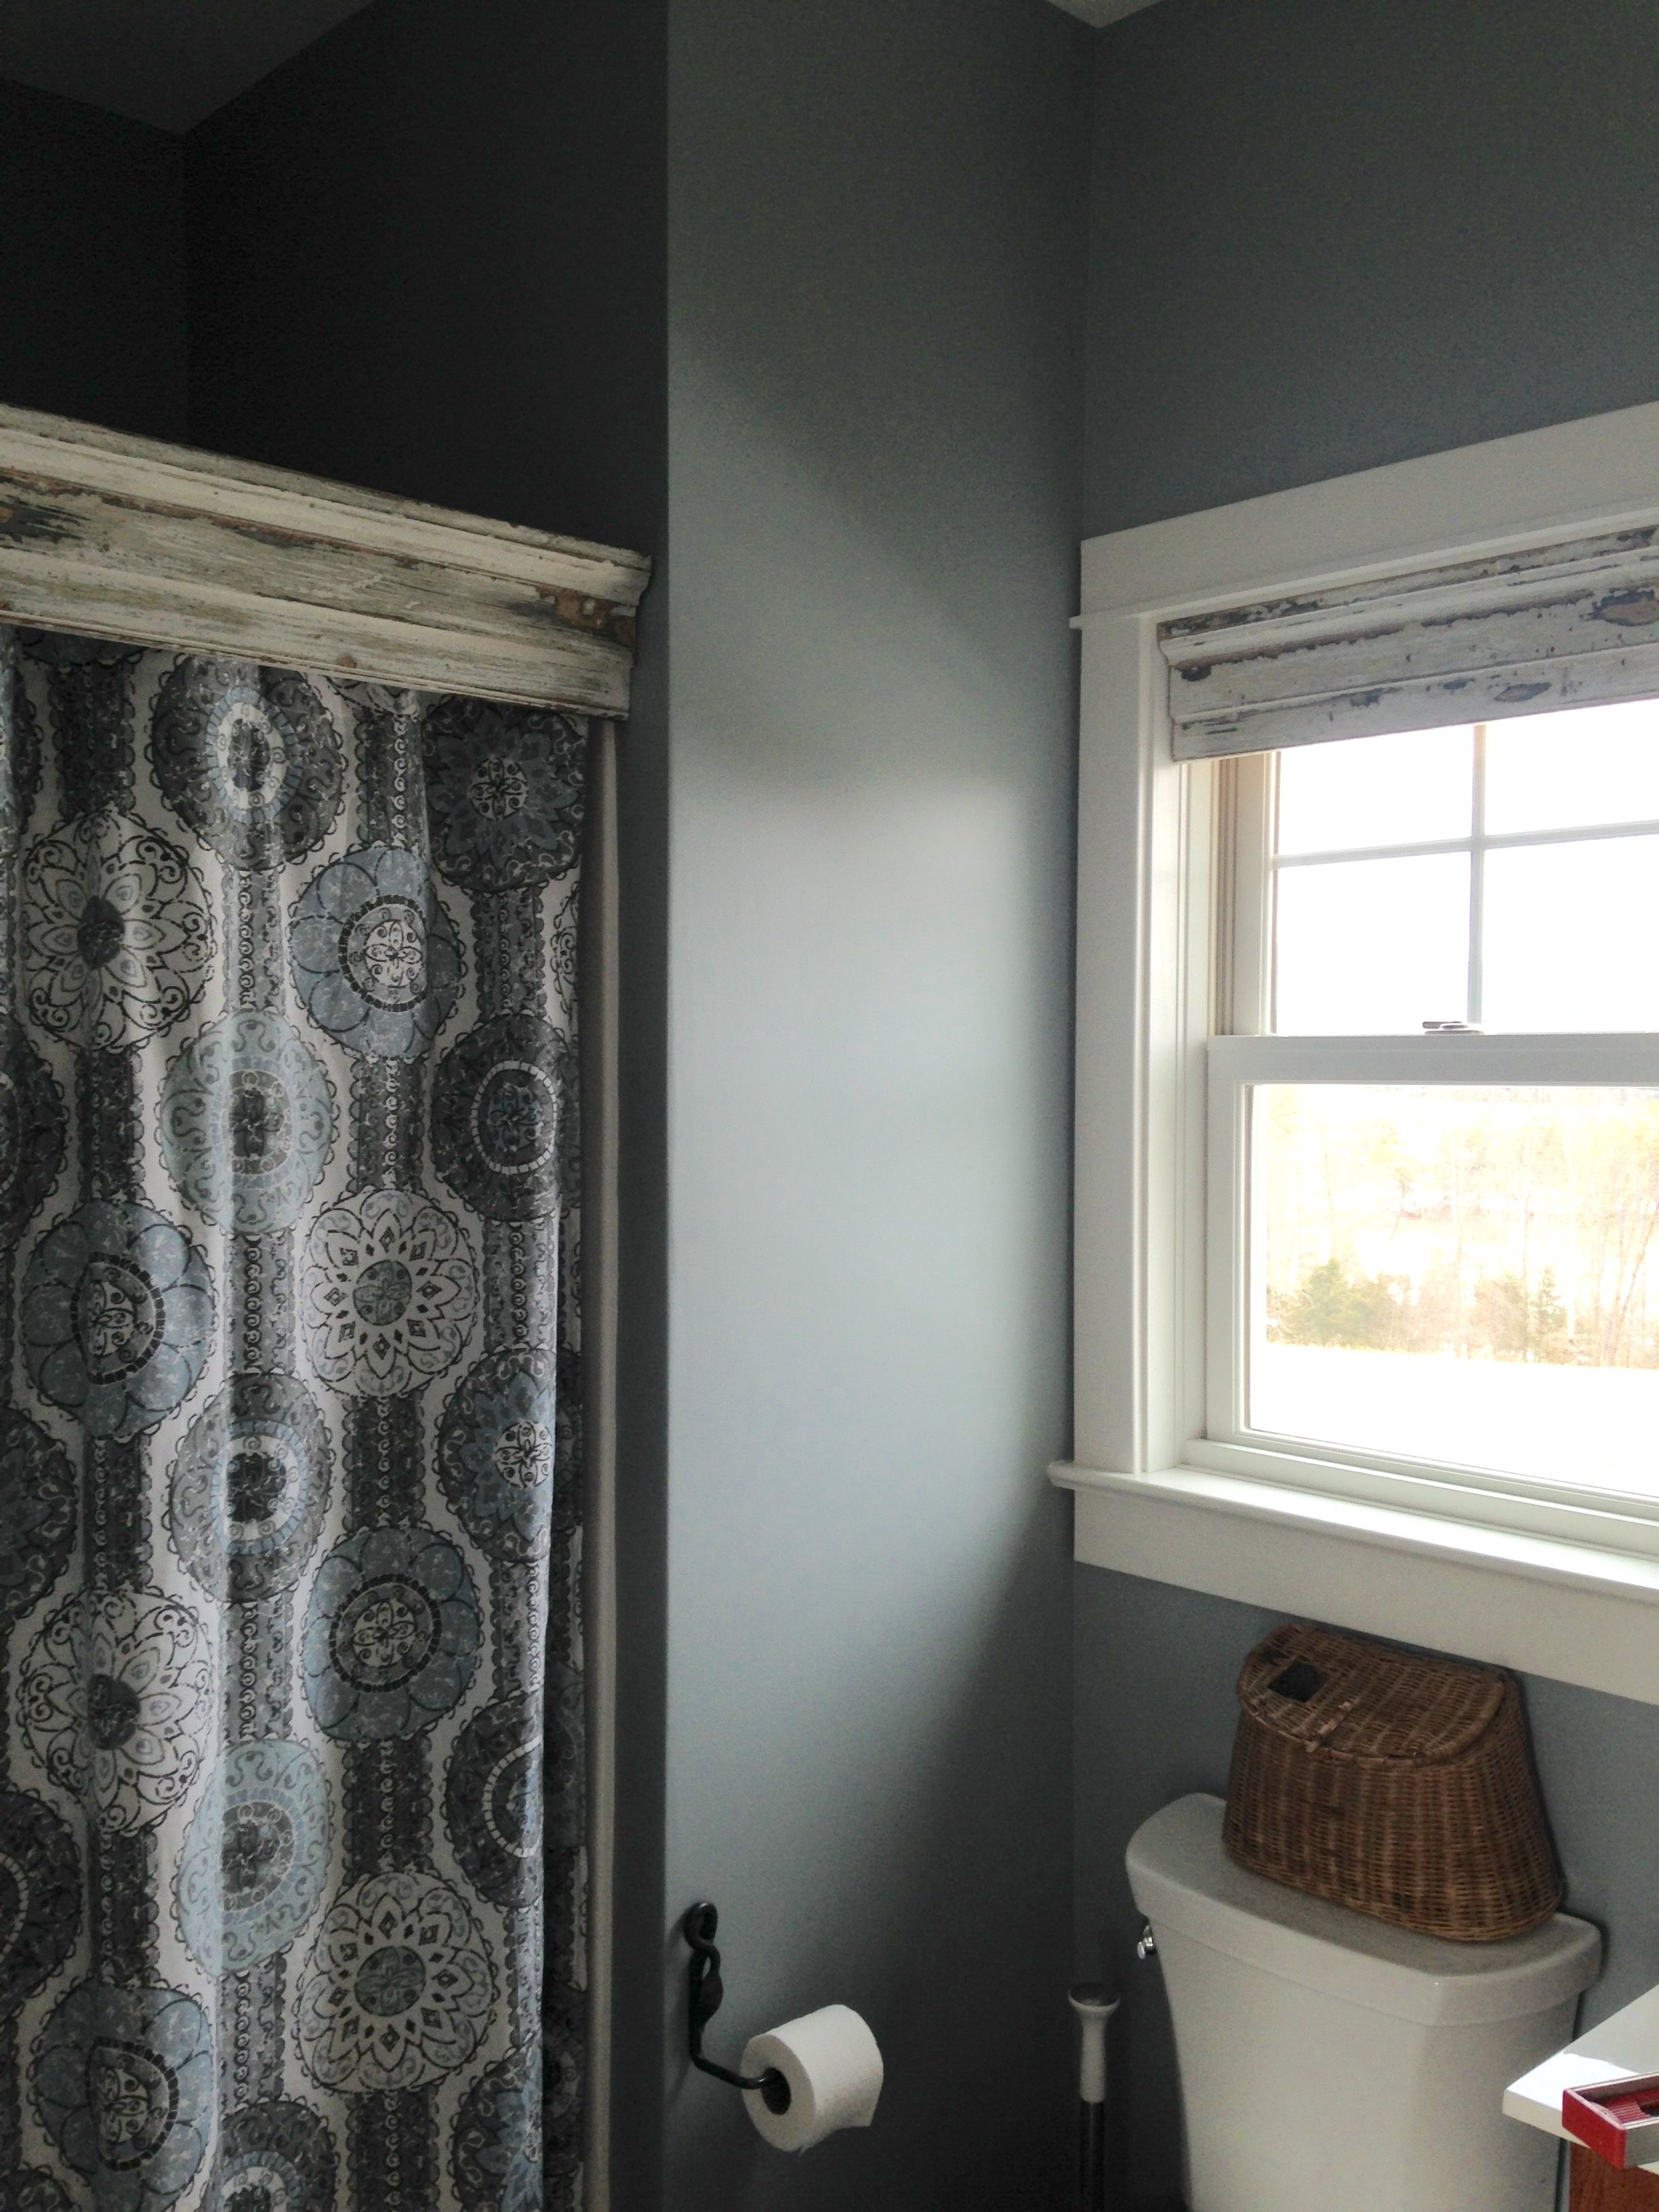 Great Shower Curtain Rod Concealer Used A Piece Of Salvaged Door Trim To Cover The And Small As Window Valence